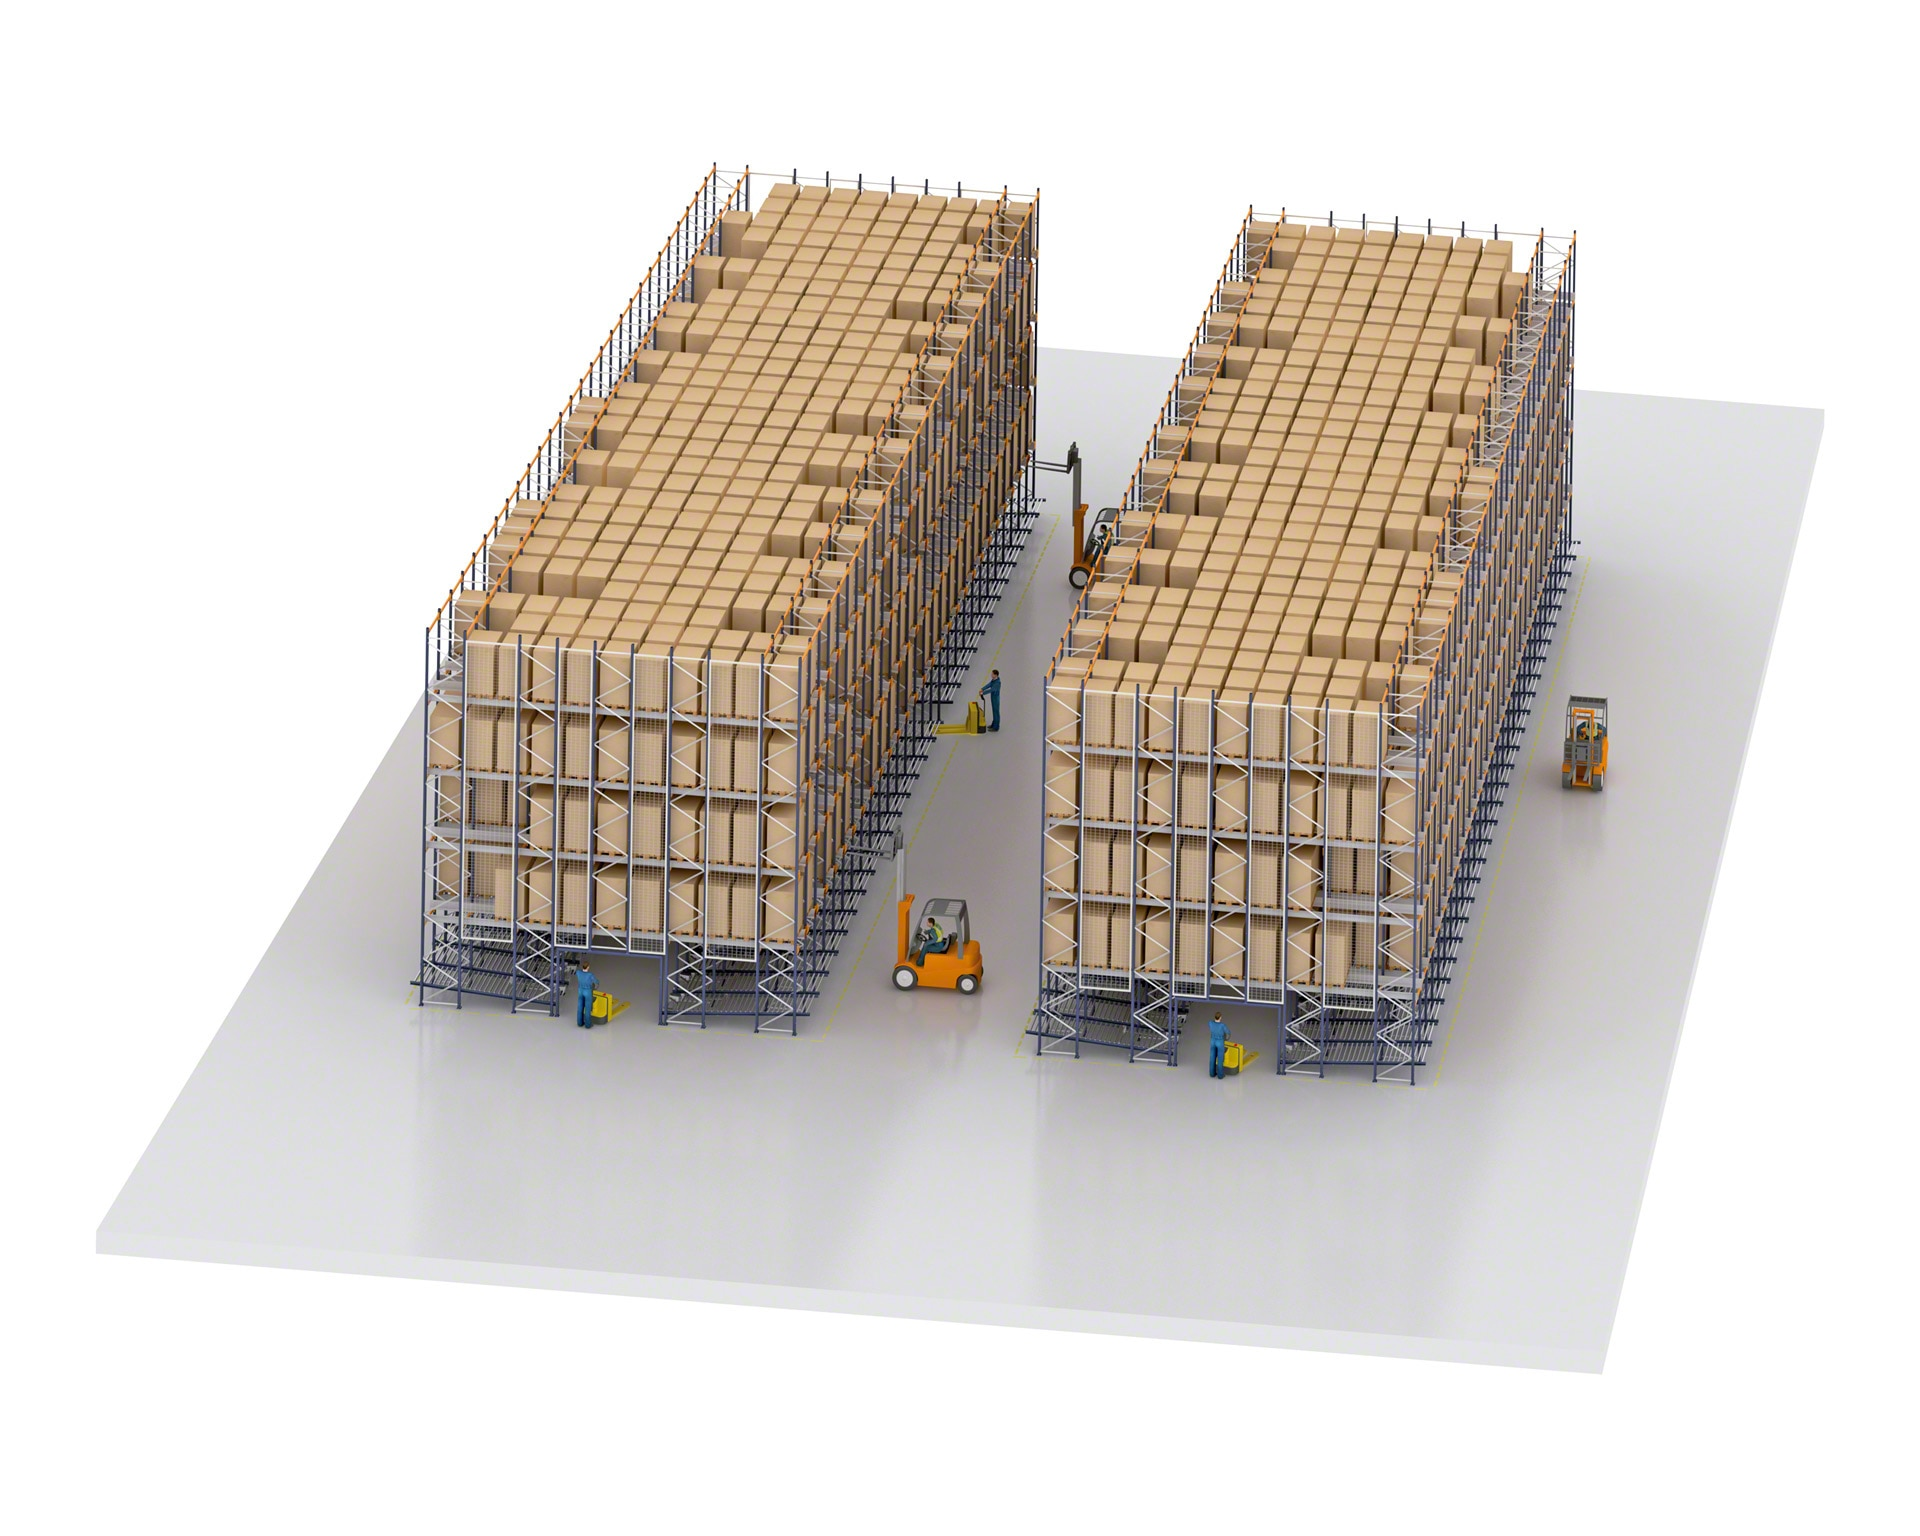 In high rotation warehouses with Pallet Shuttle, part of the system is reserved for live storage racks for picking